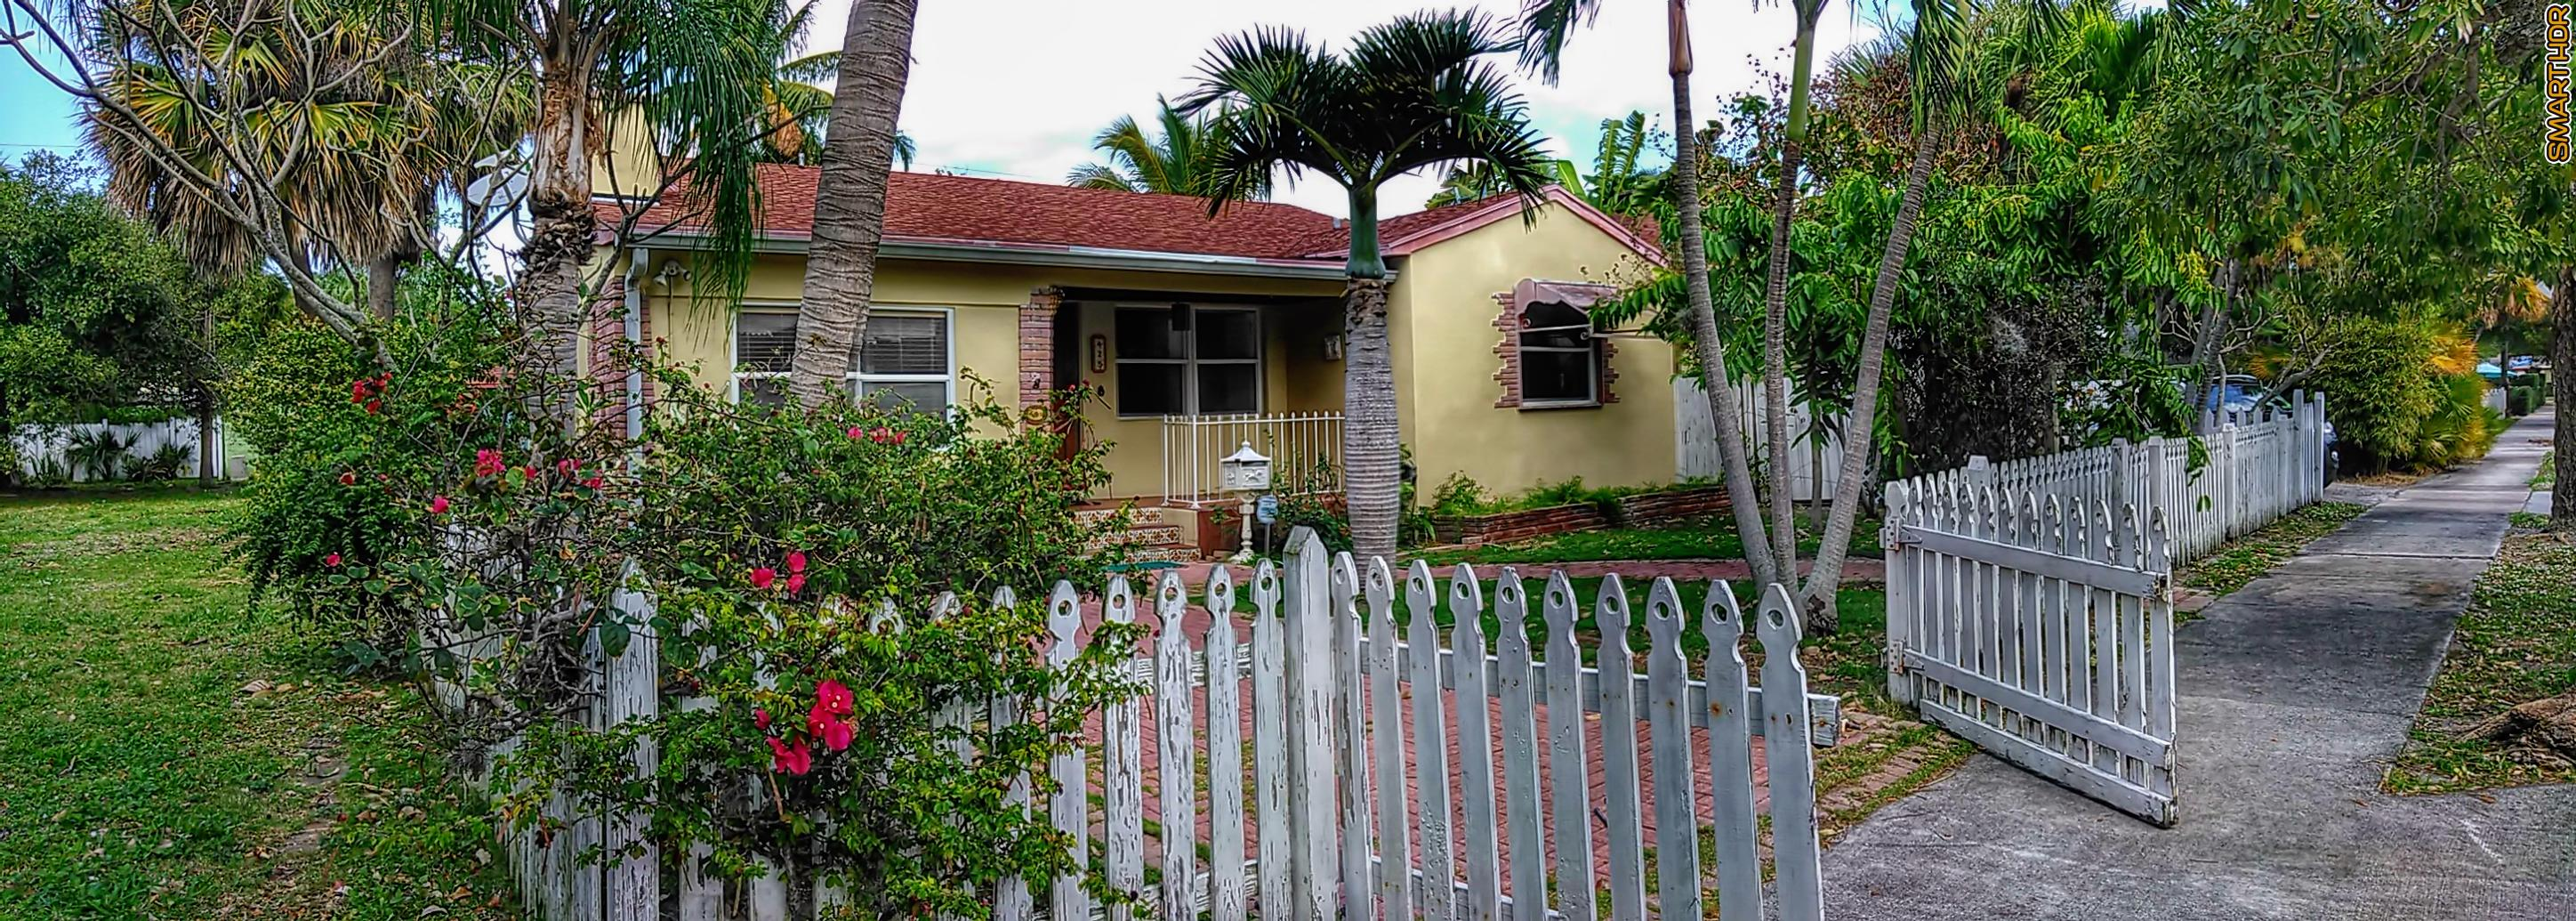 Home for sale in NORTHWOOD ADD IN PB 8 PGS 47 & 62, PB 9 PGS 30 & 47, PB 10 P 11, PB 11 PGS 18, 38 West Palm Beach Florida